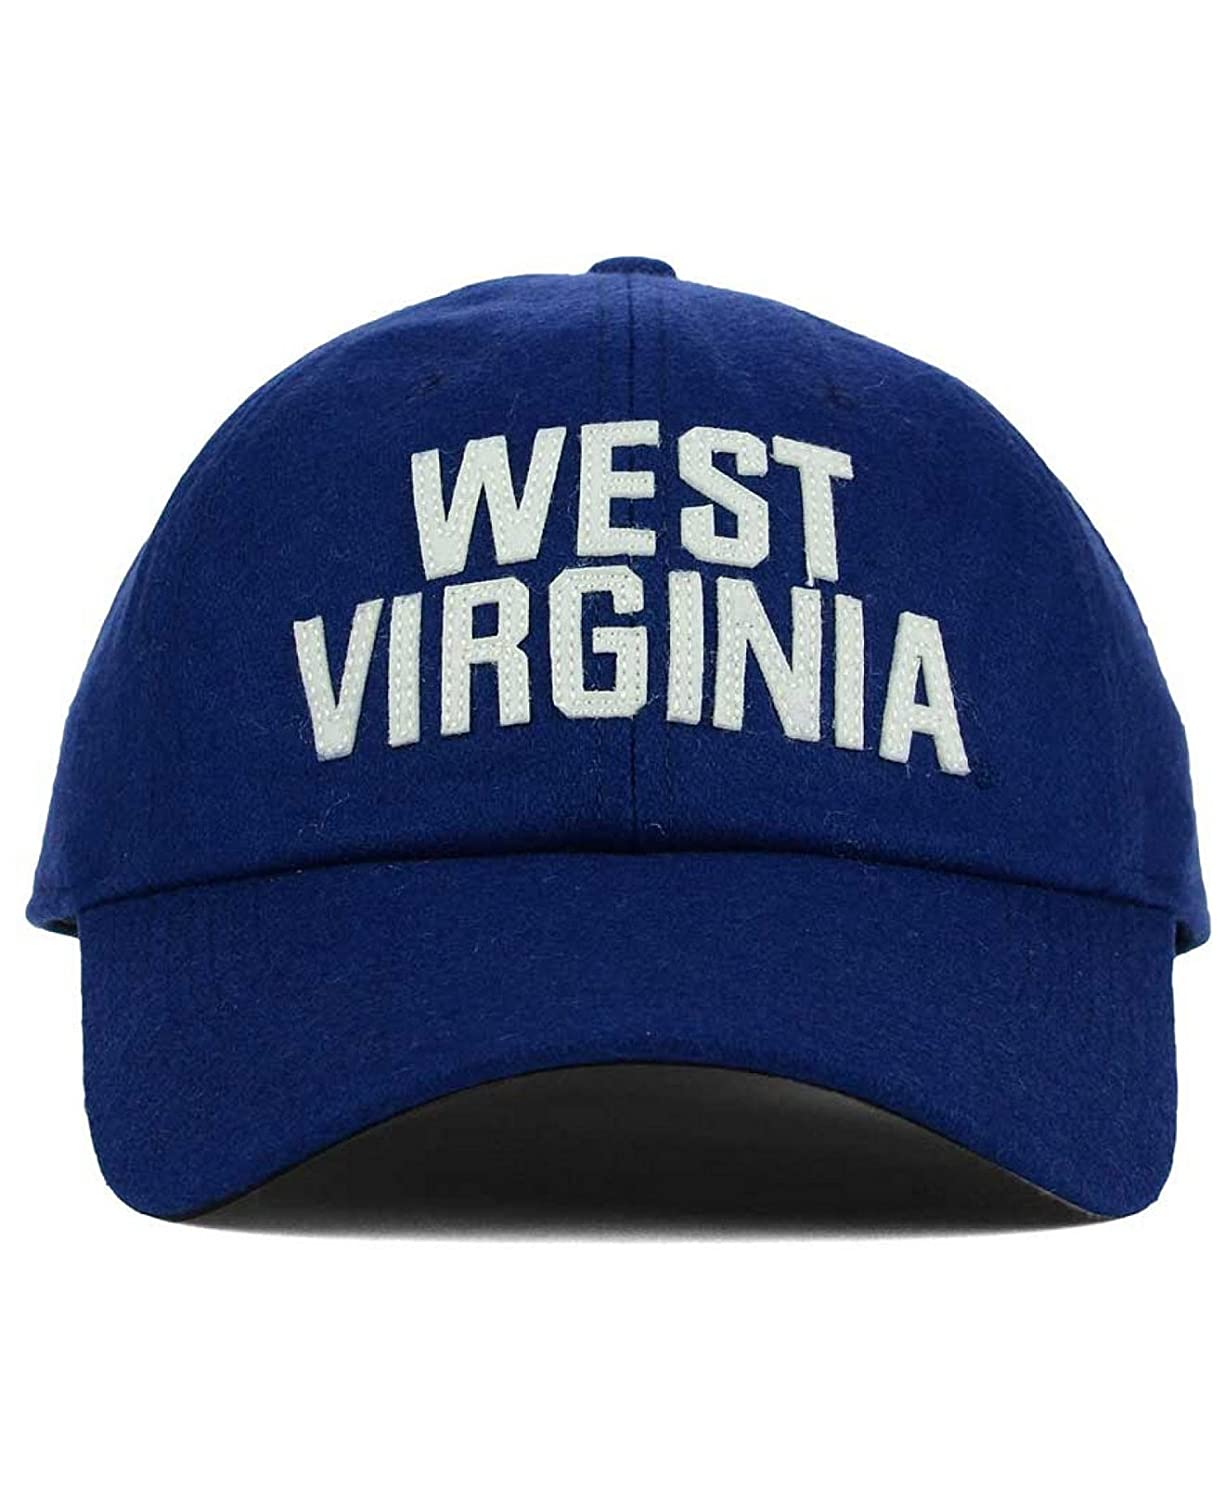 aec6932a327 Amazon.com   NIKE West Virginia Mountaineers H86 Prep Navy Easy Fit Fitted  Hat Cap (Large)   Sports   Outdoors